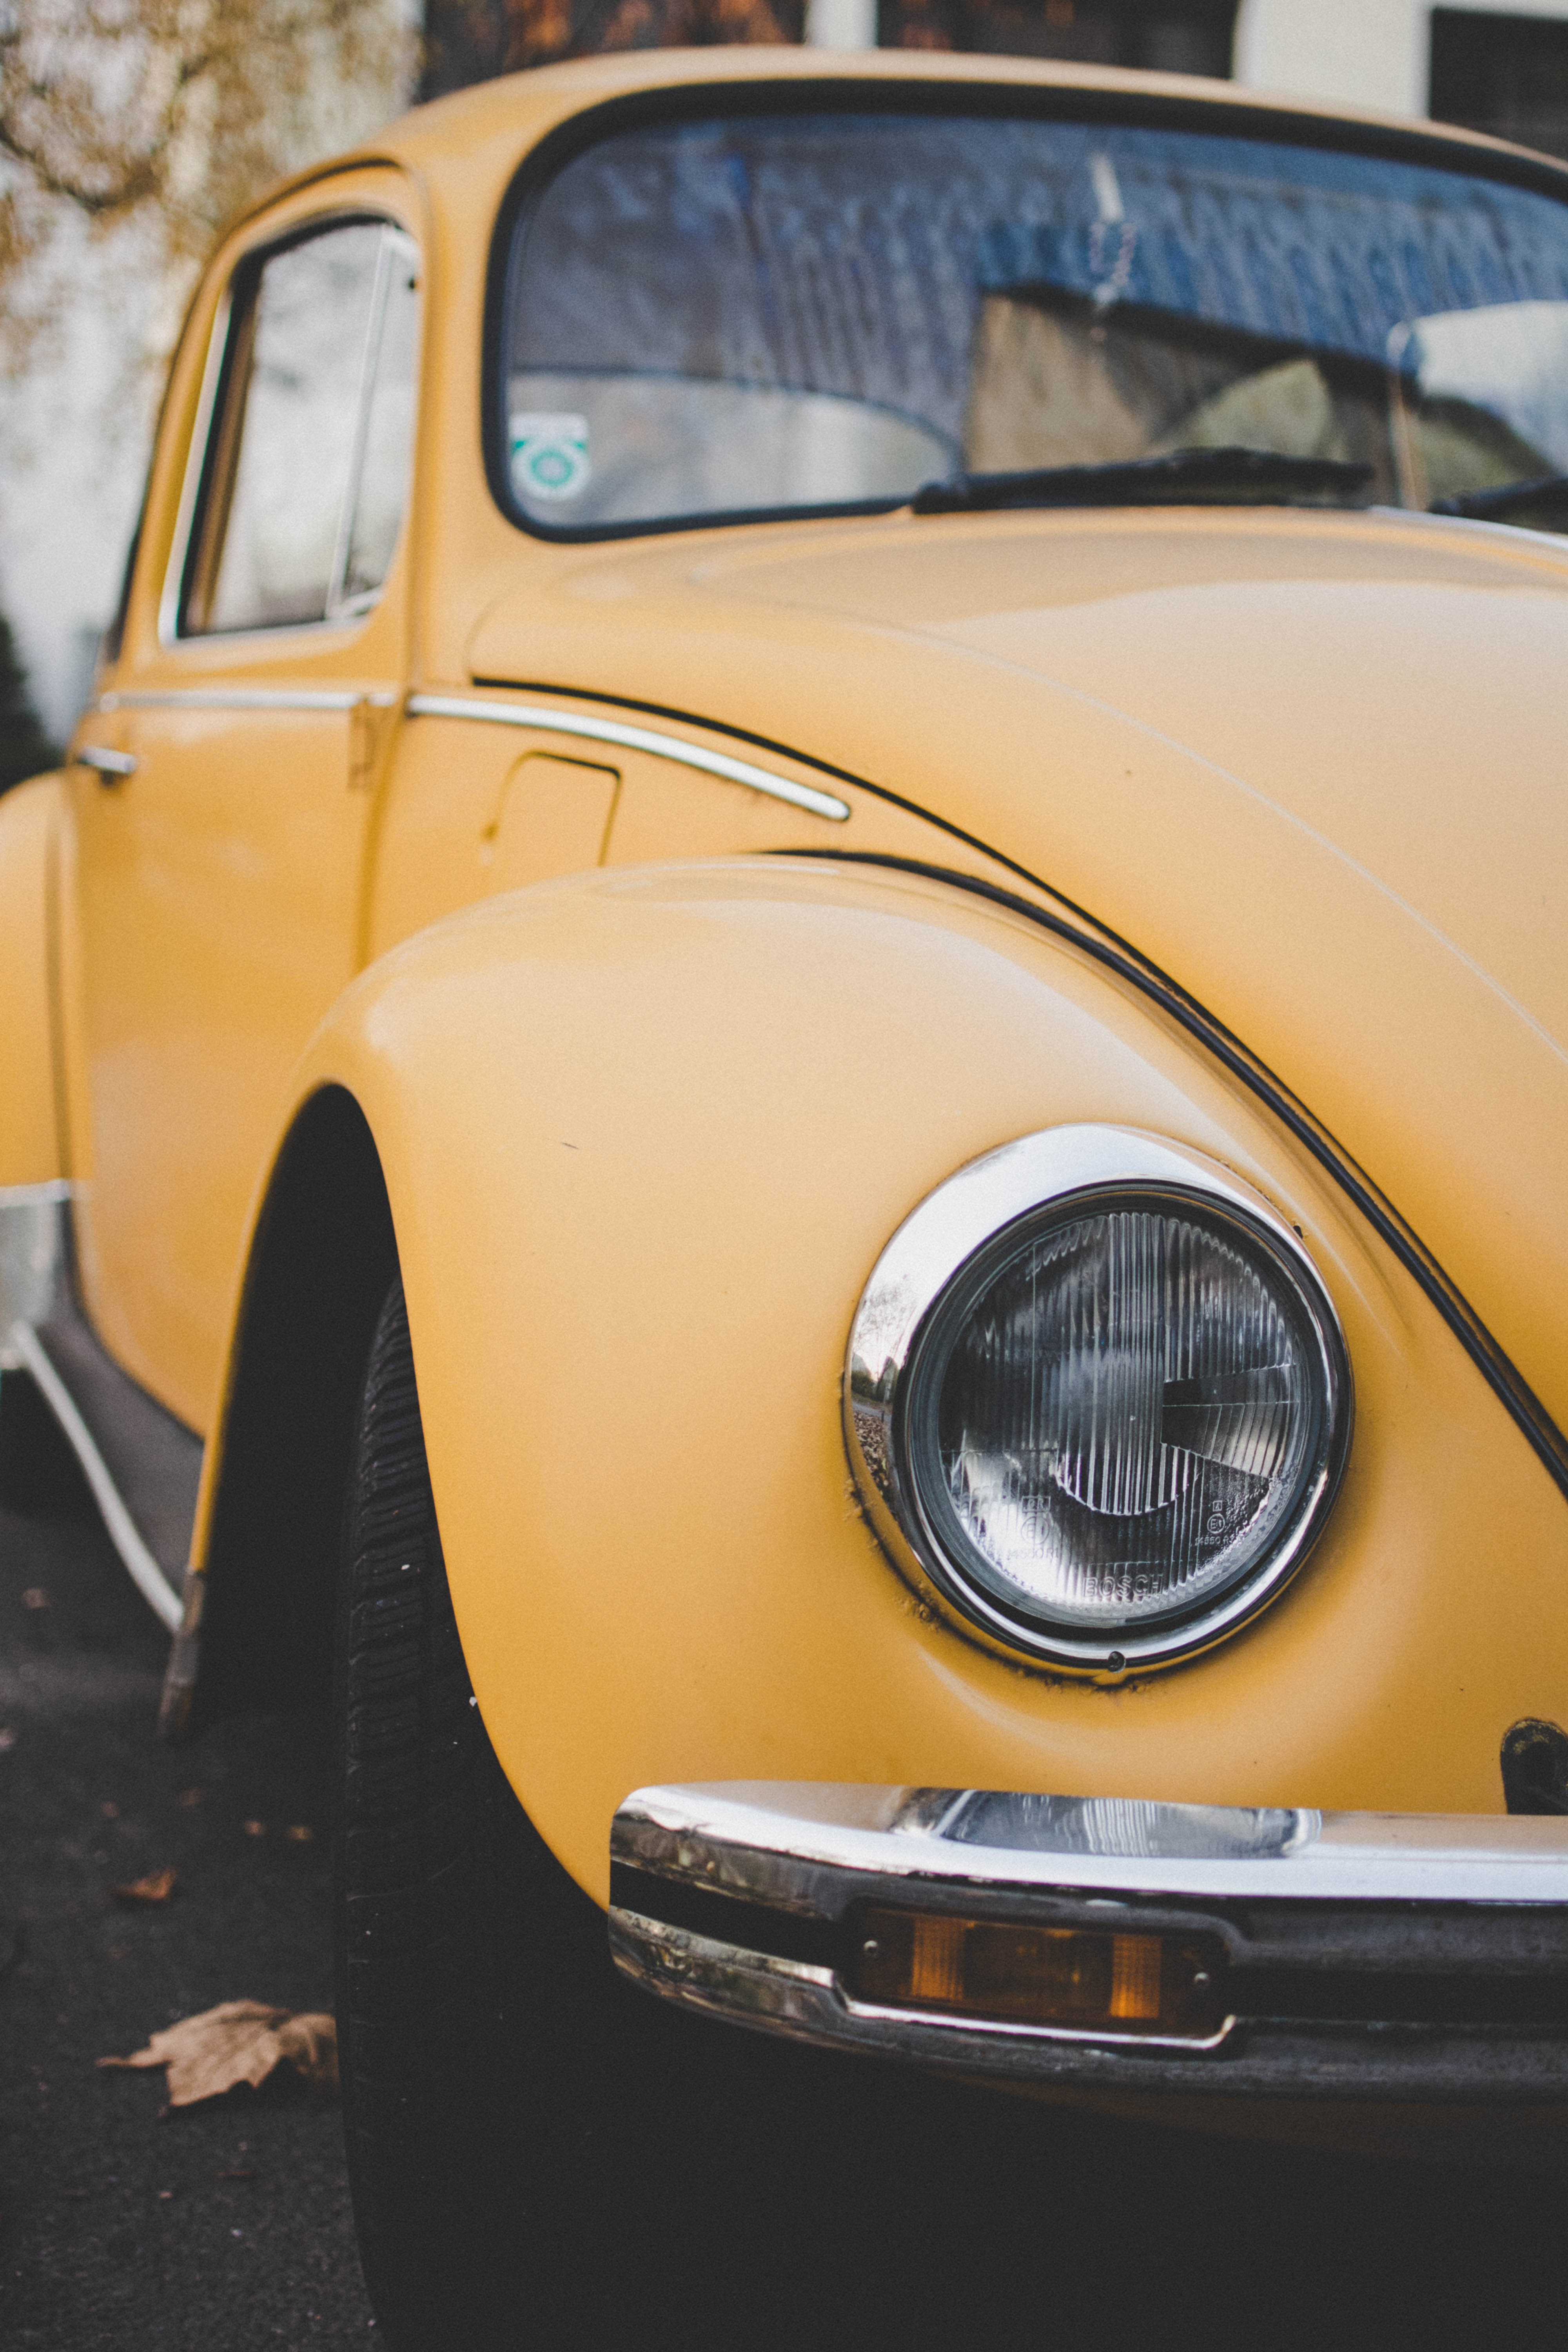 Yellow Volkswagen Beetle Coupe Parked on Gray Concrete Surface